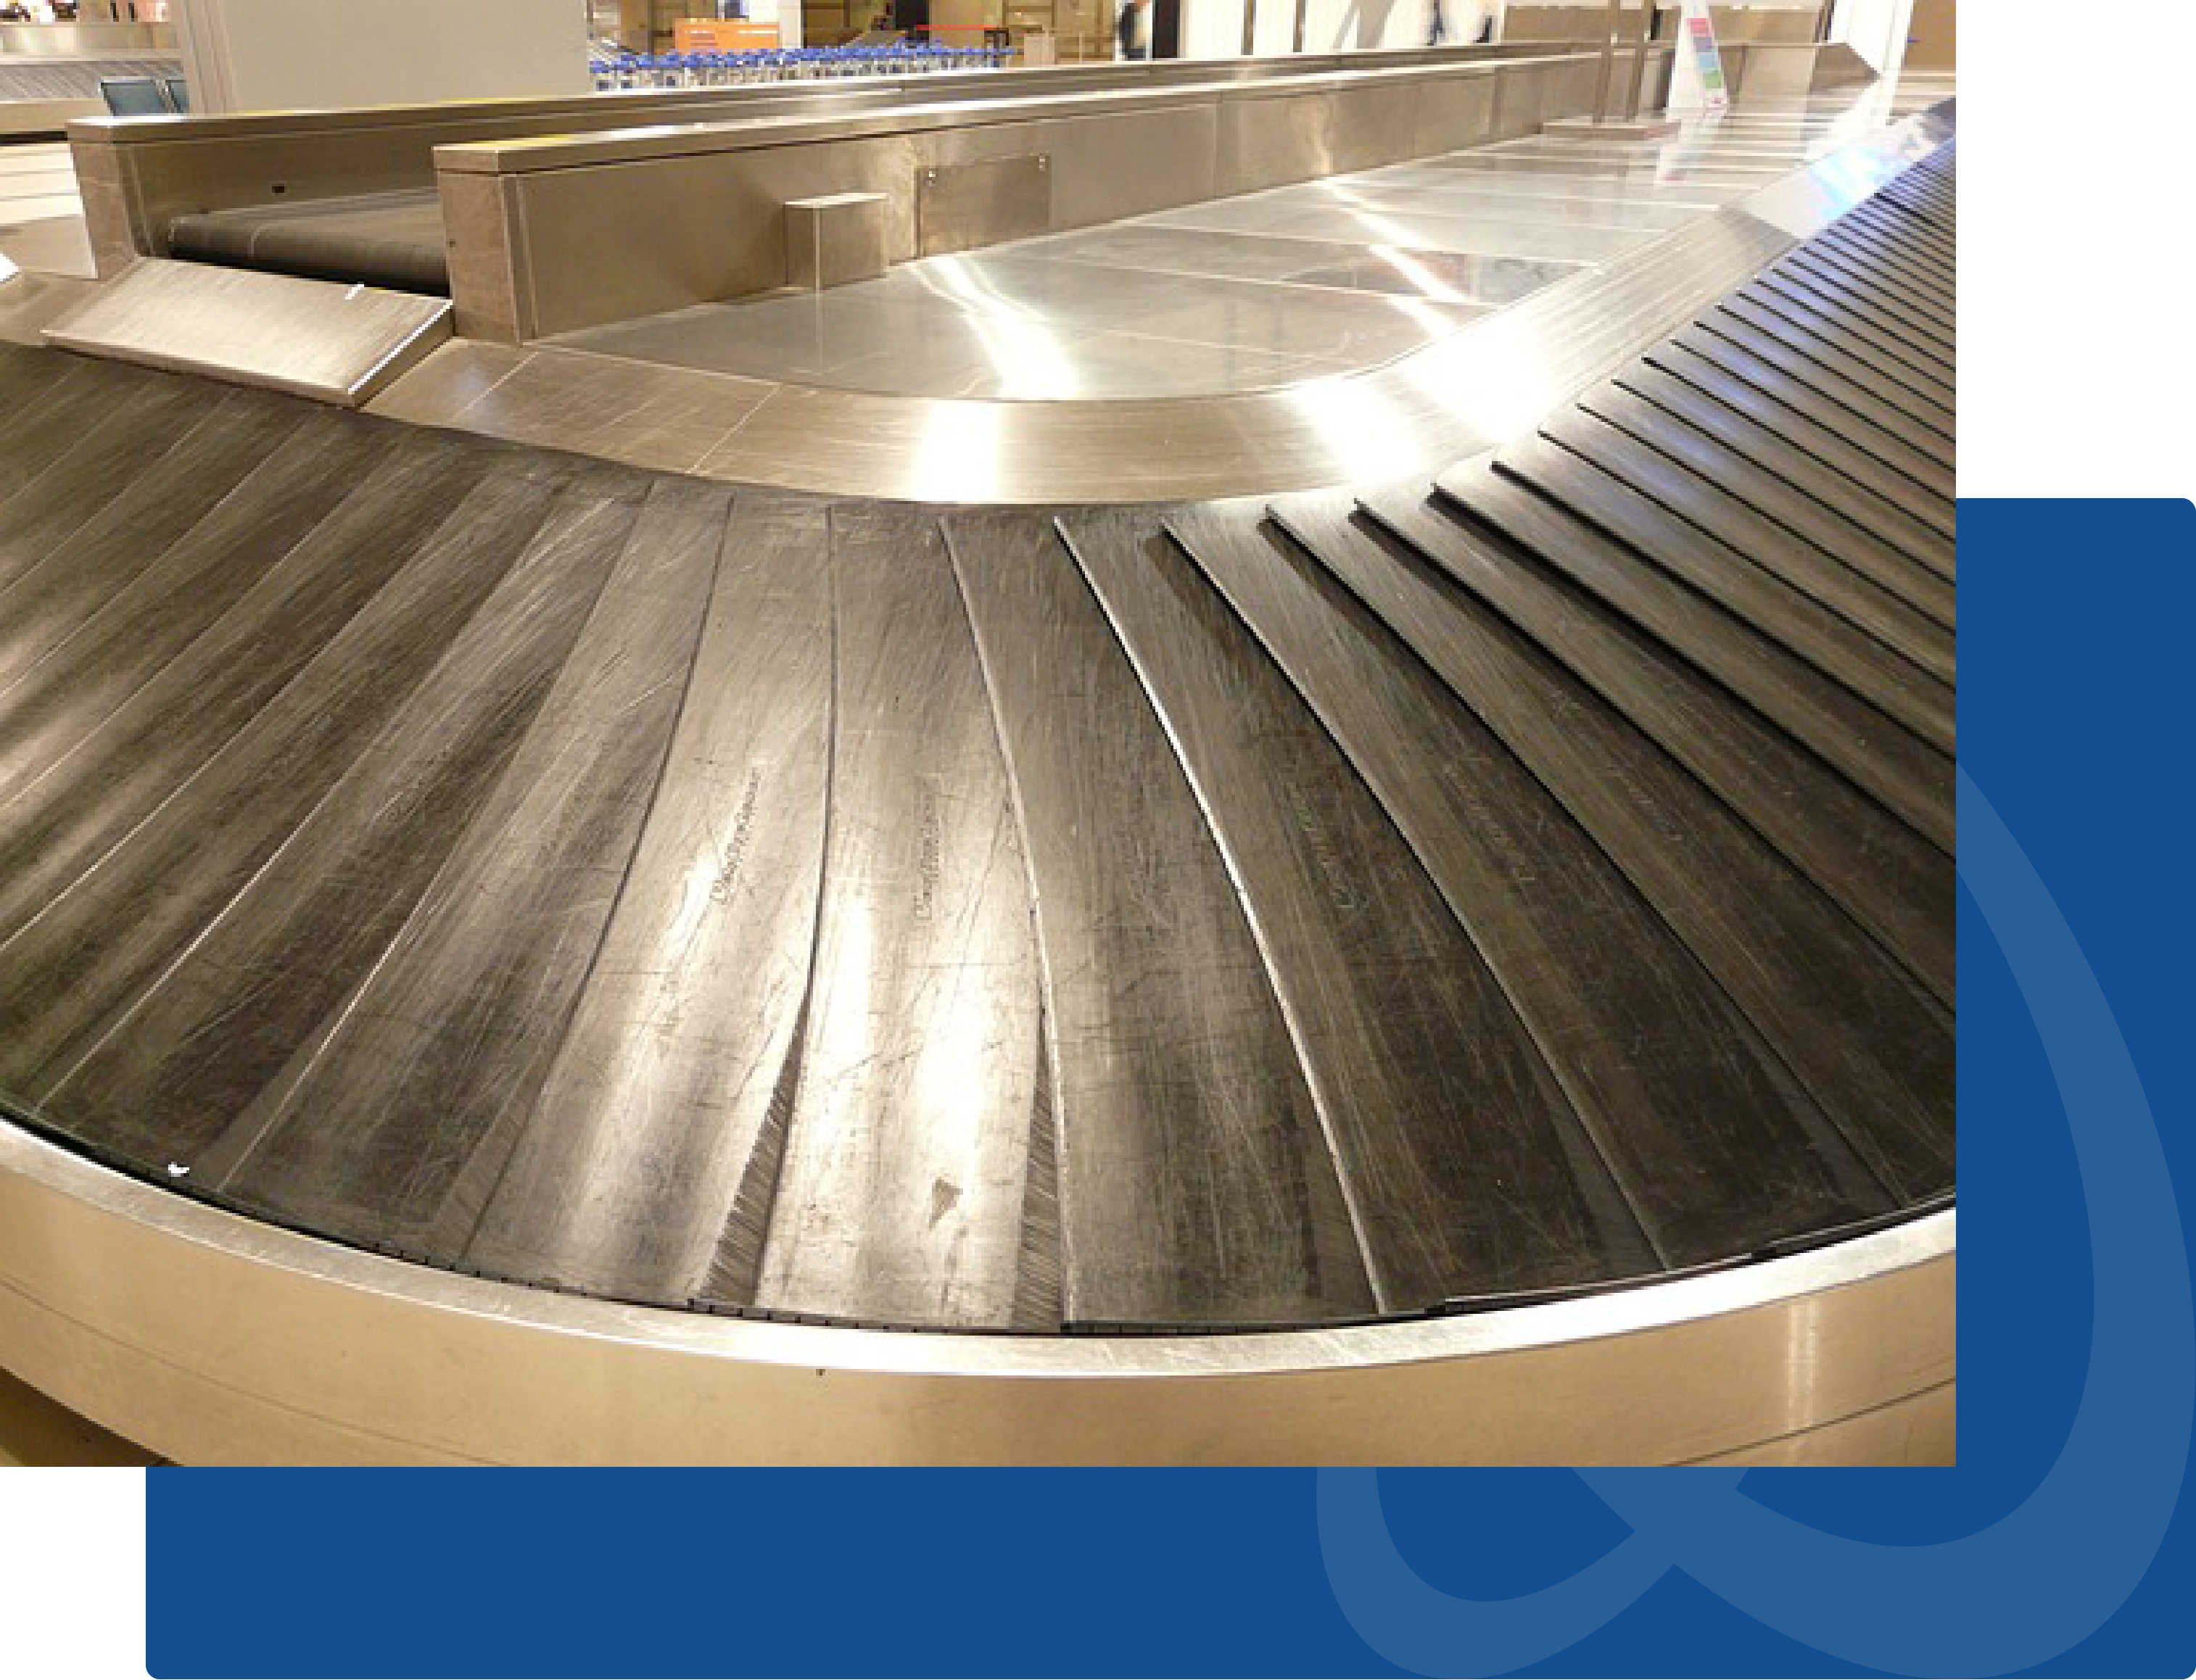 curved conveyor belt system